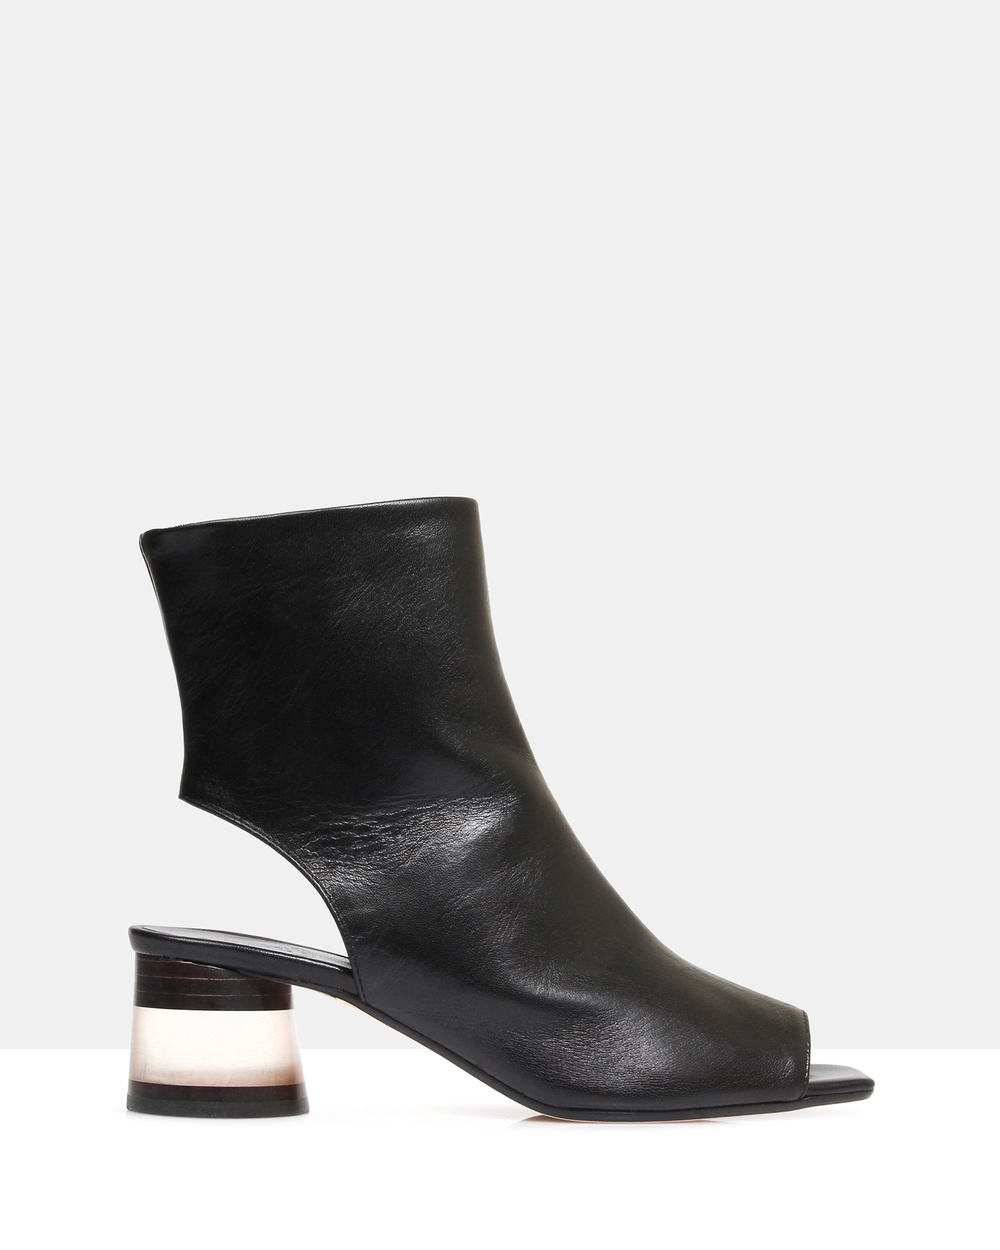 Beau Coops Pio Leather Ankle Boots Mid-low heels Black Pio Leather Ankle Boots